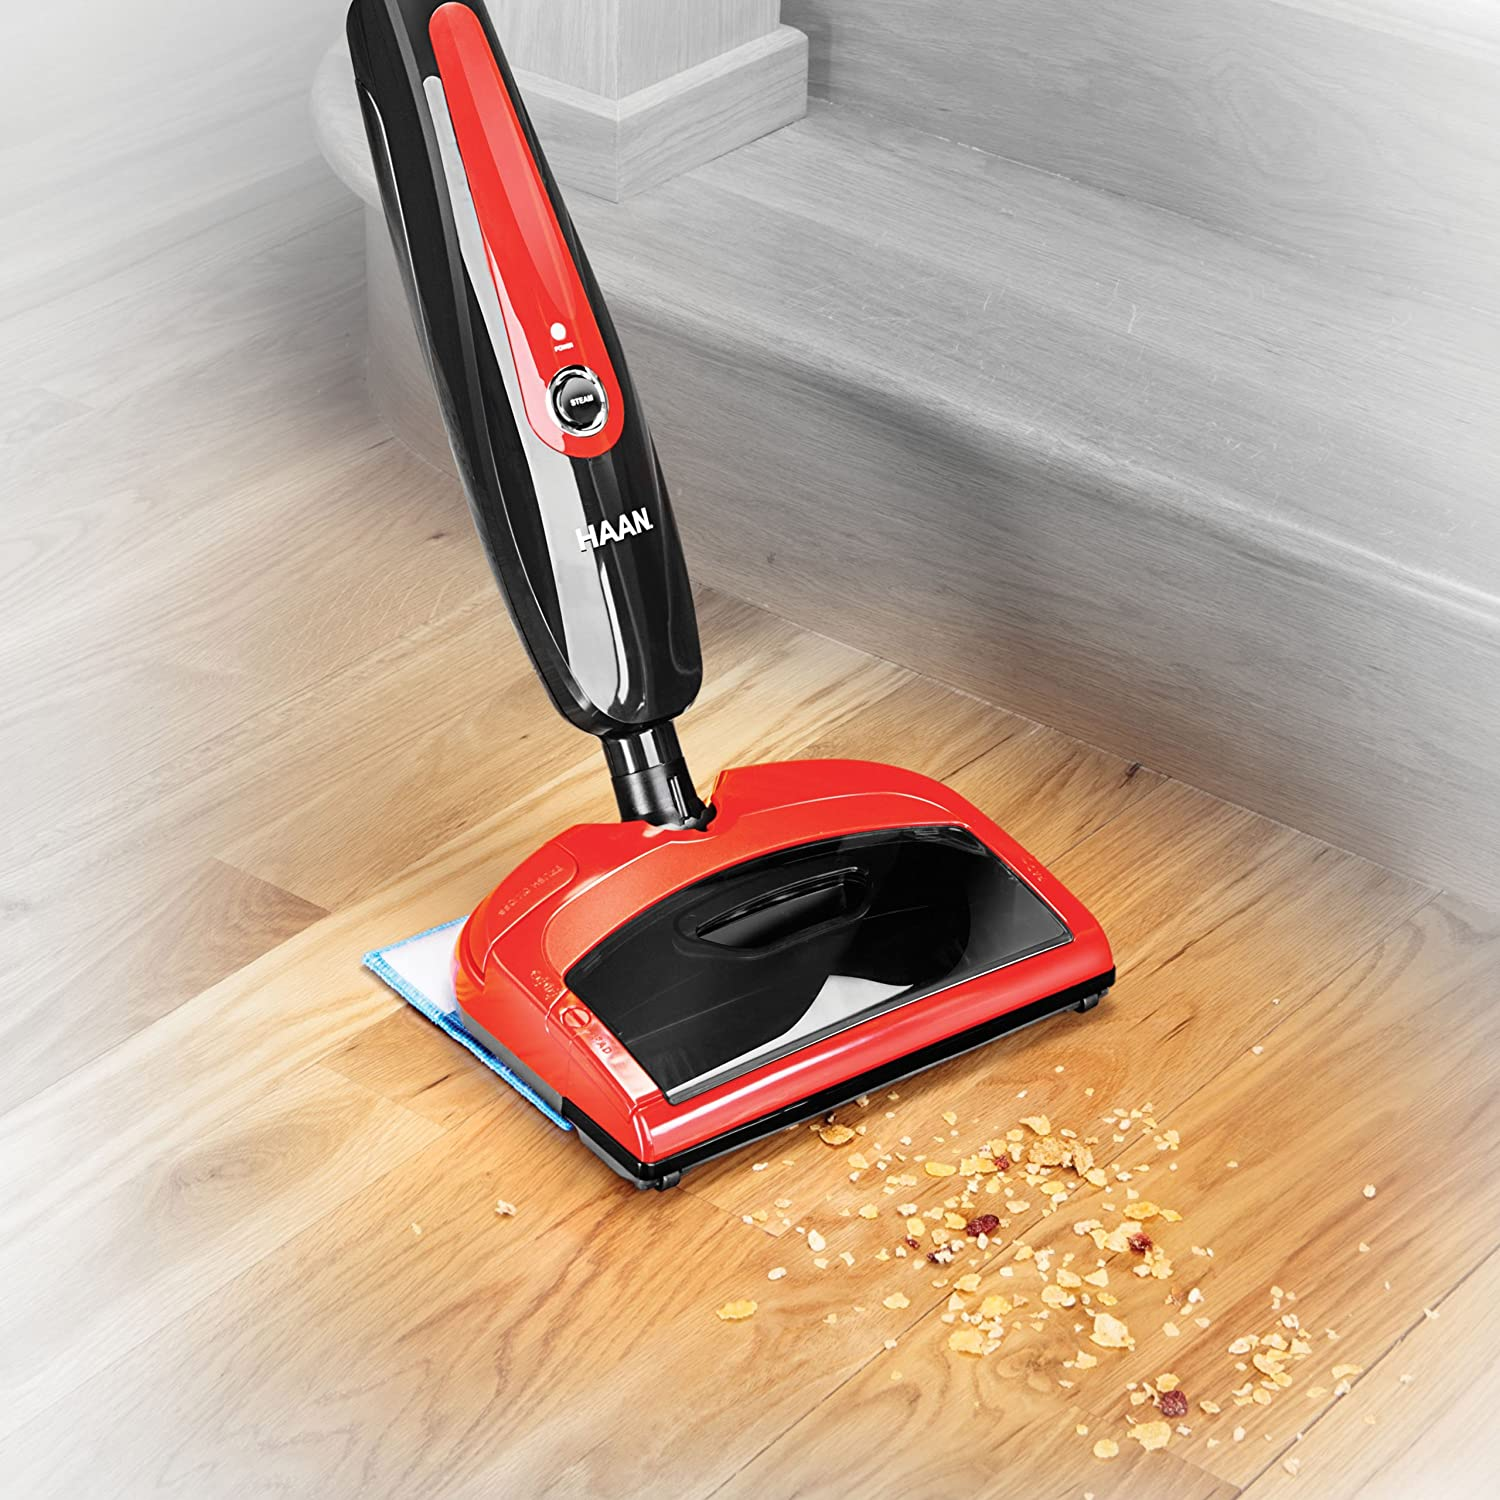 carpet steamer. amazon.com - haan hd-60 duo sweeper and floor steamer carpet steam cleaners t